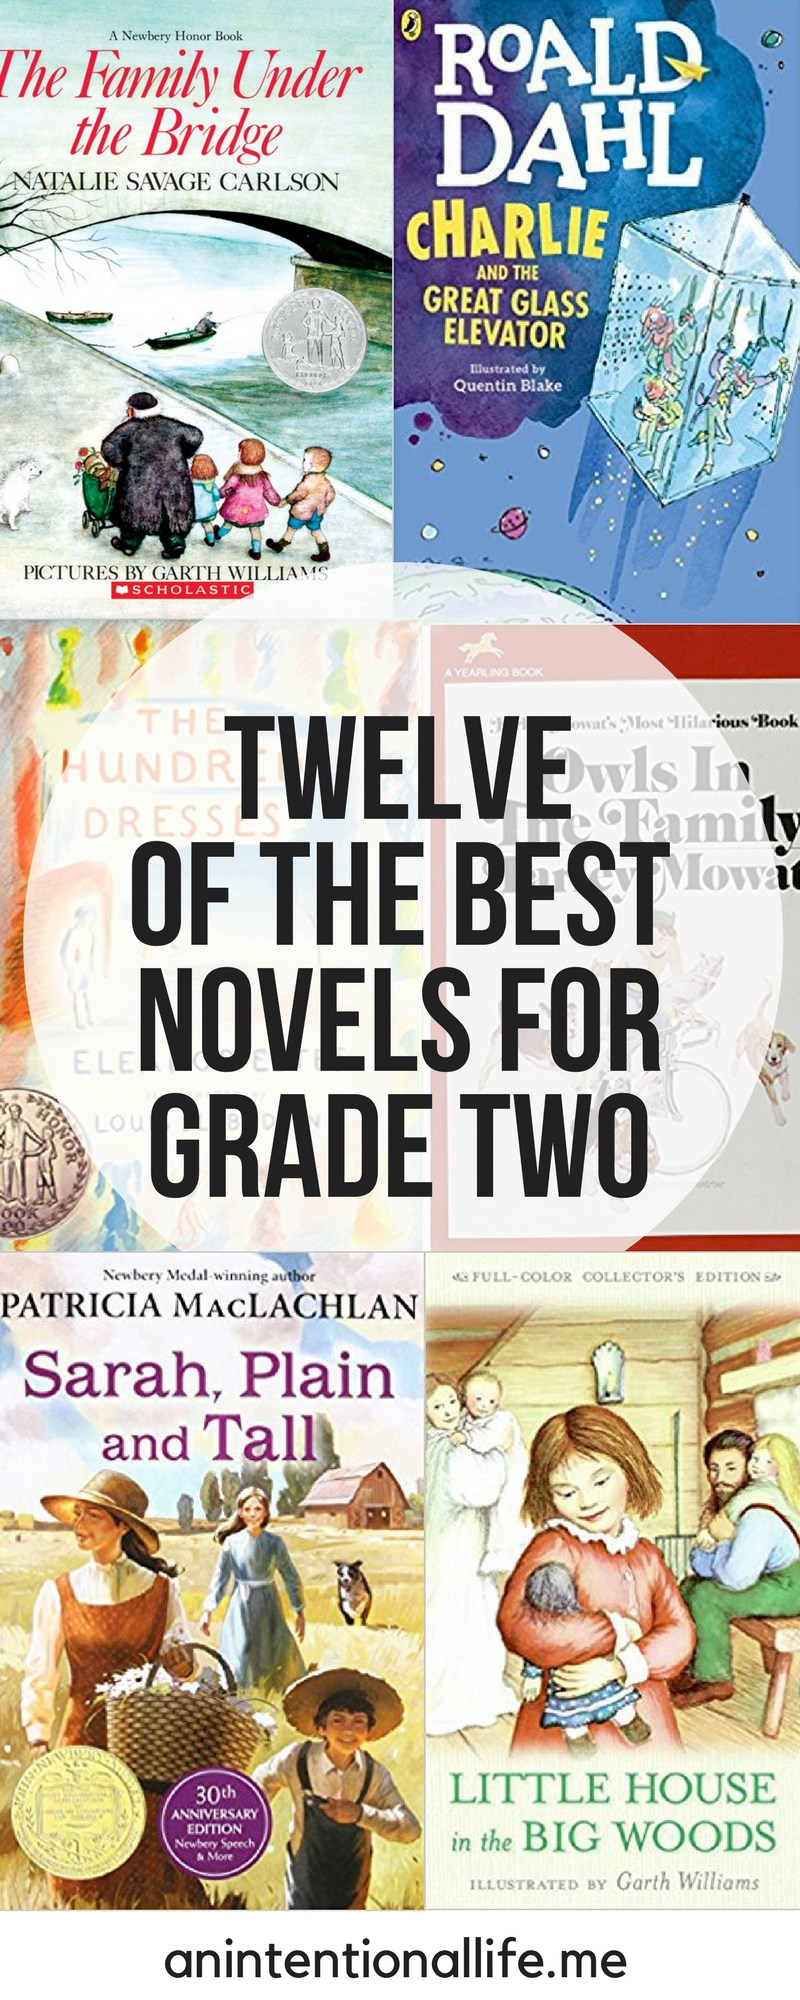 Twelve of the Best Novels for Grade Two